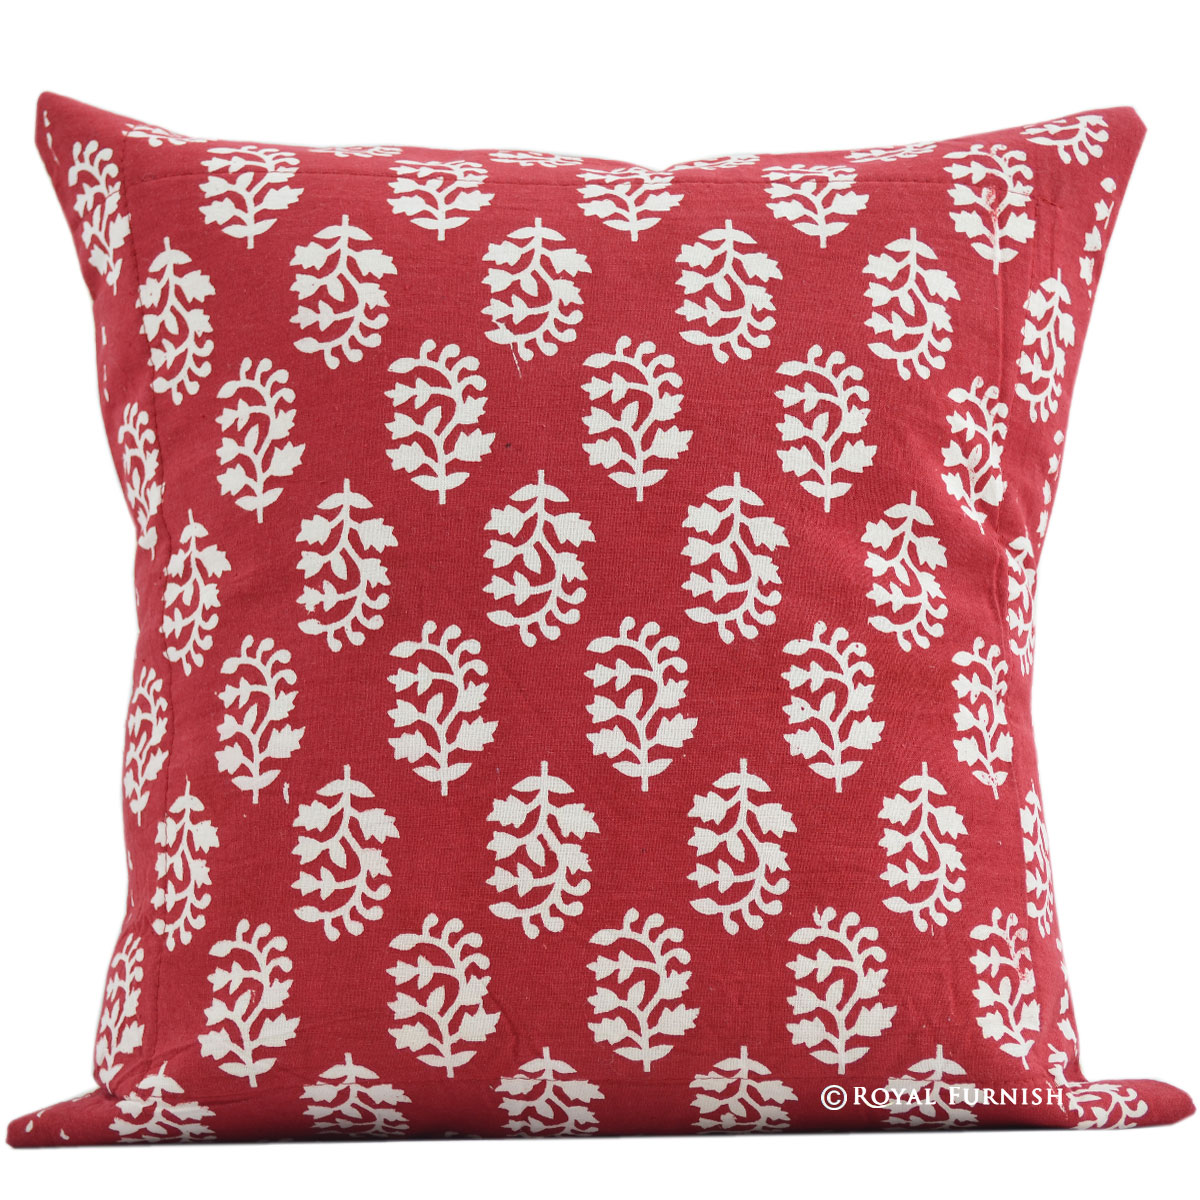 16 Quot Red India Floral Hand Block Print Cotton Throw Pillow